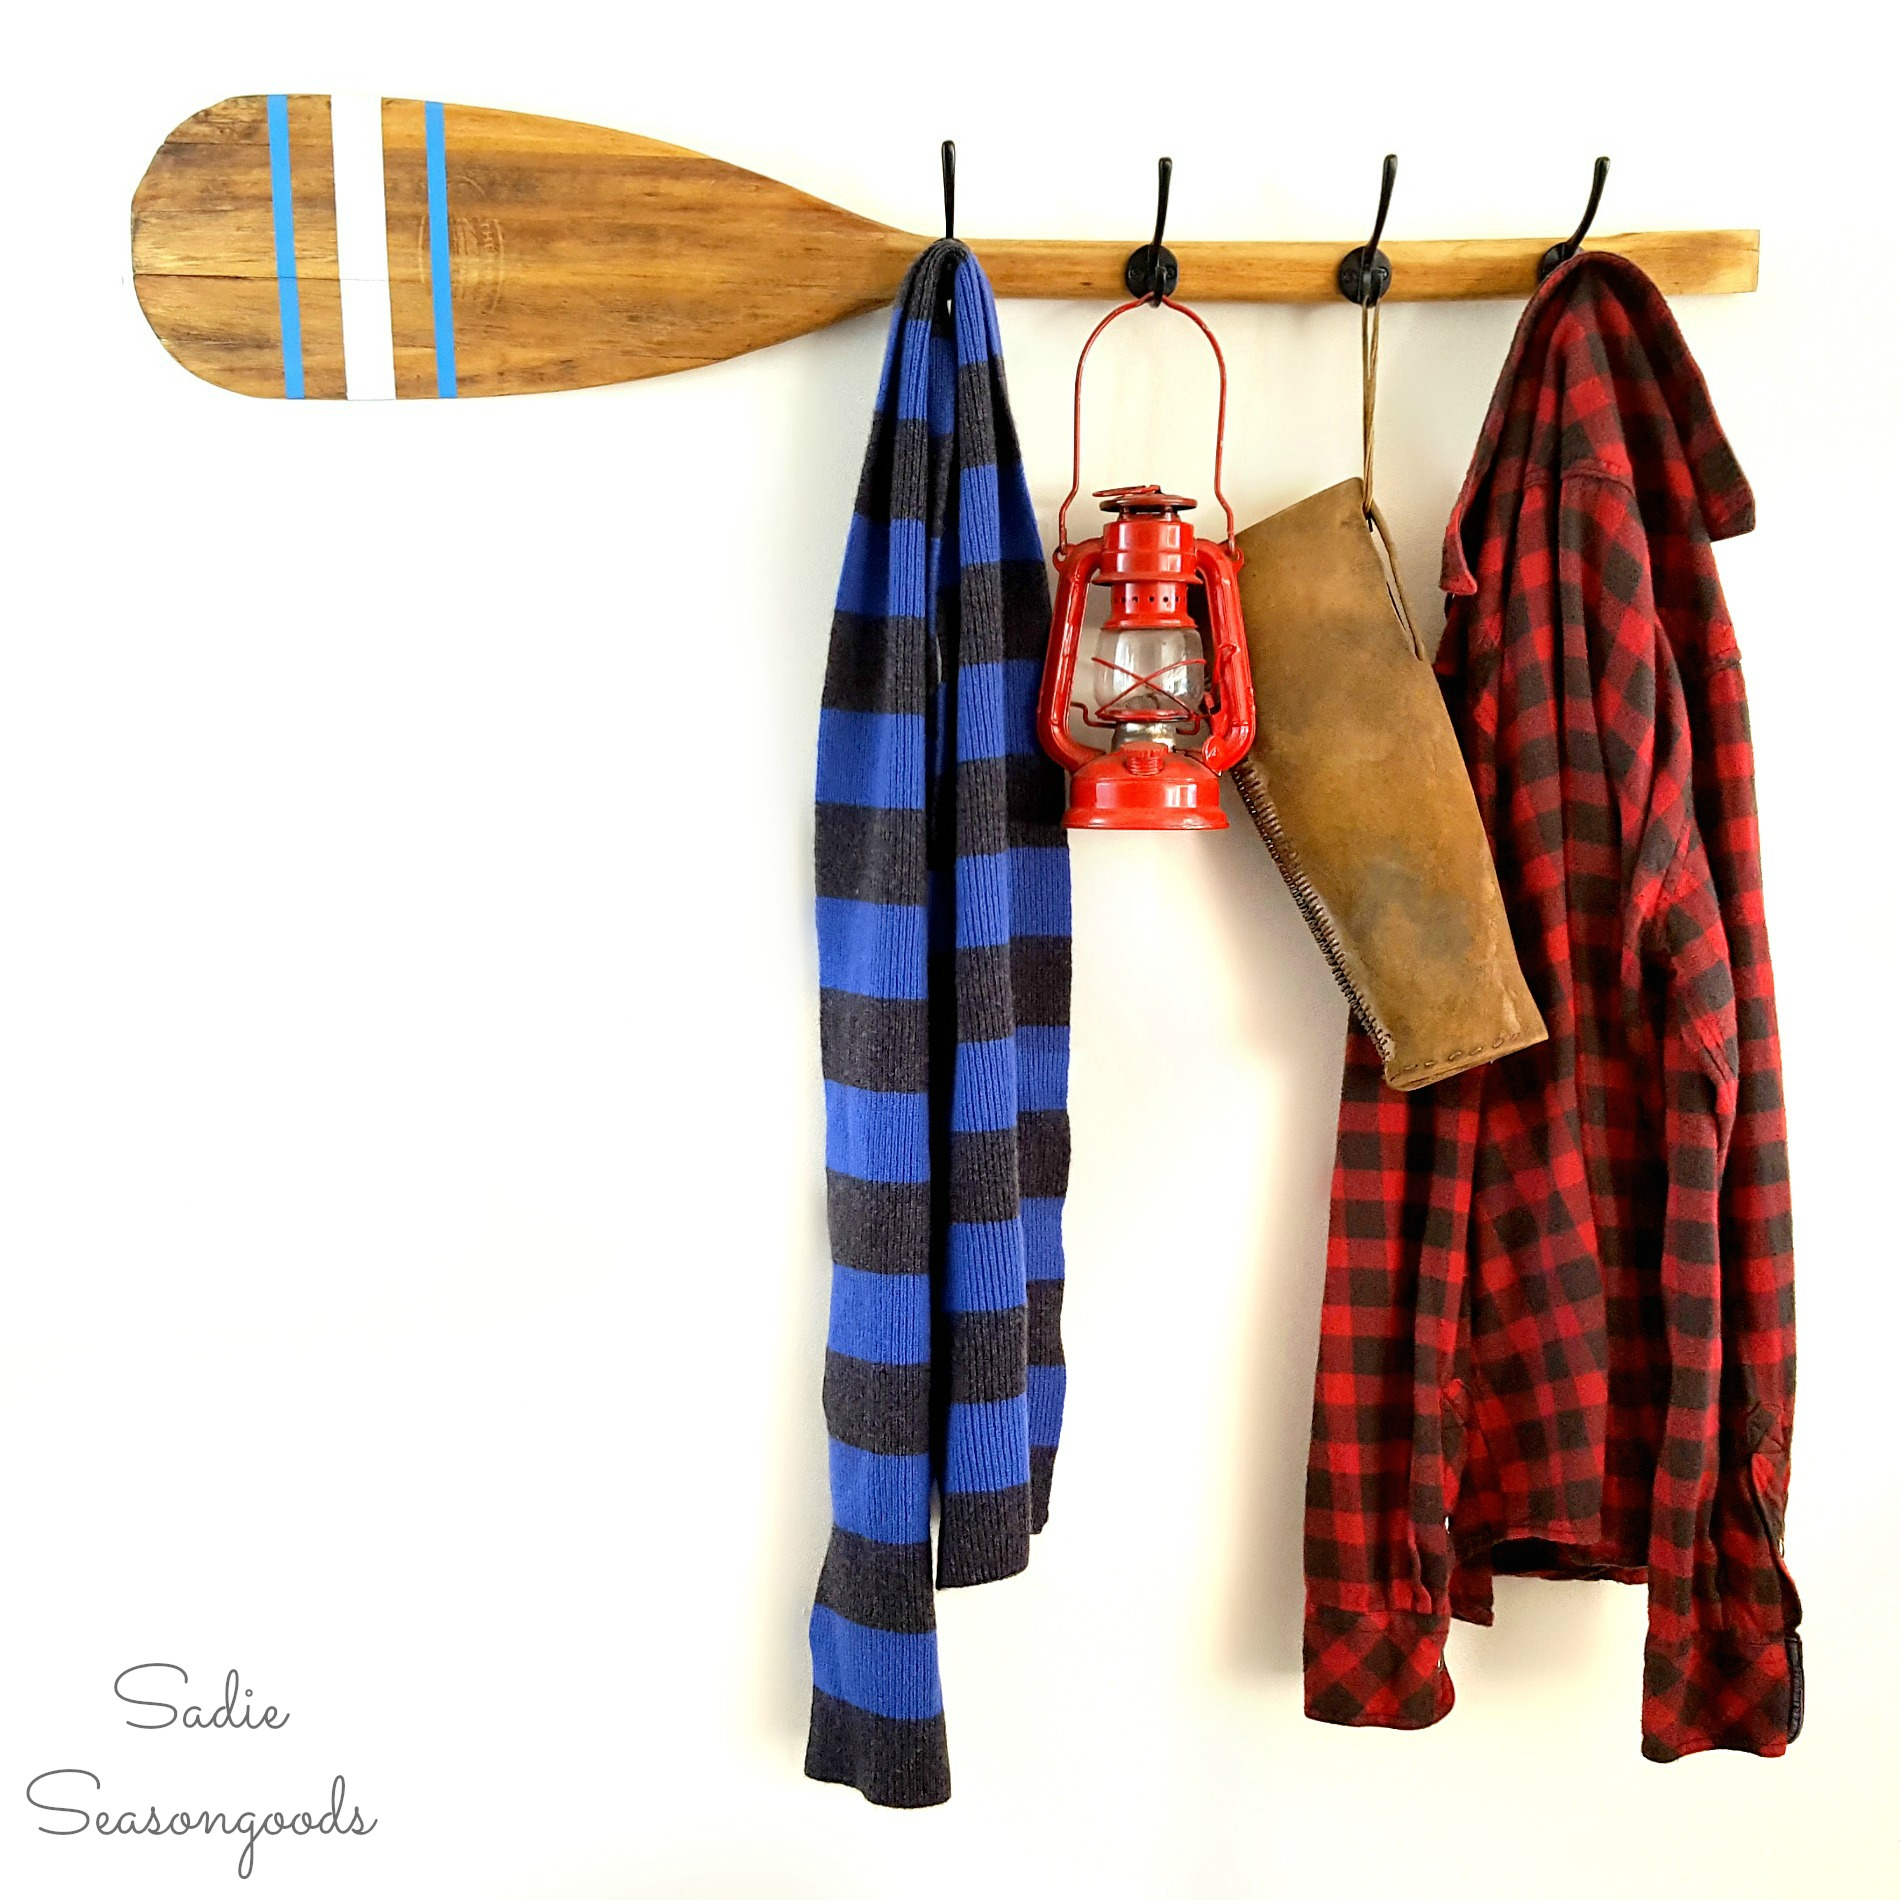 Vintage canoe paddle coatrack, by Sadie Seasongoods, featured on Funky Junk Interiors